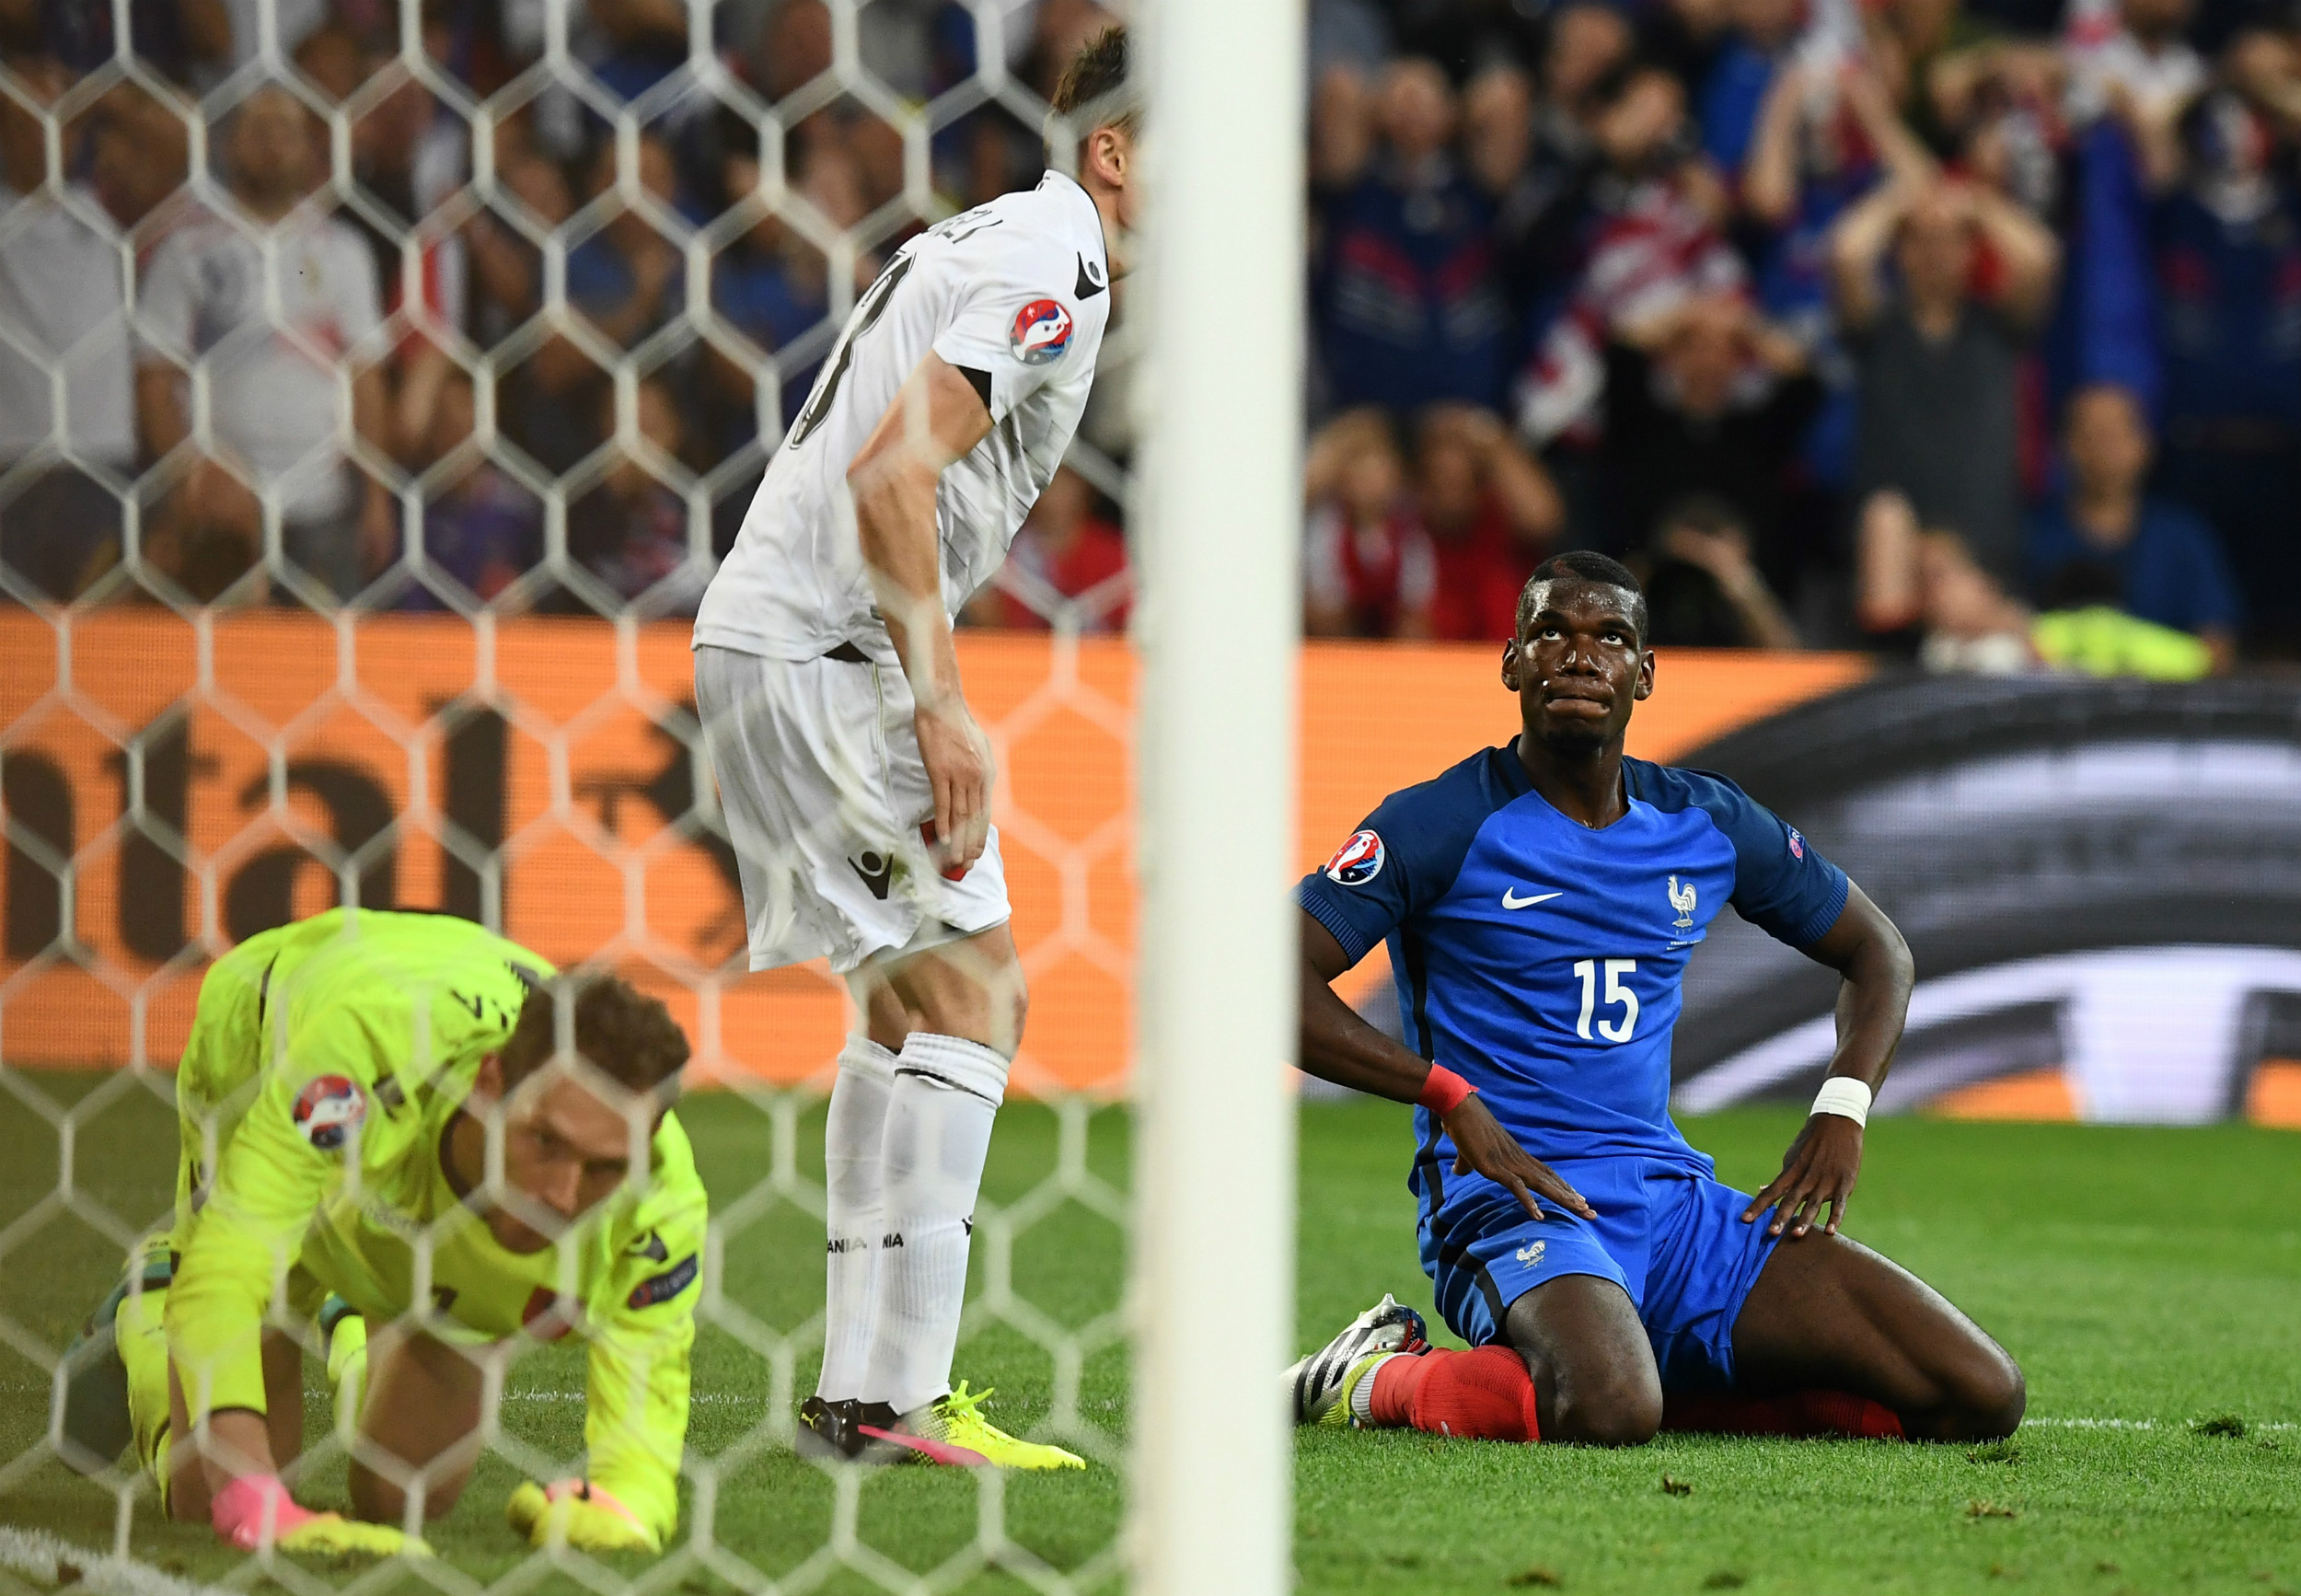 Euro 2016 comment: France must unite around Pogba to meet expectations